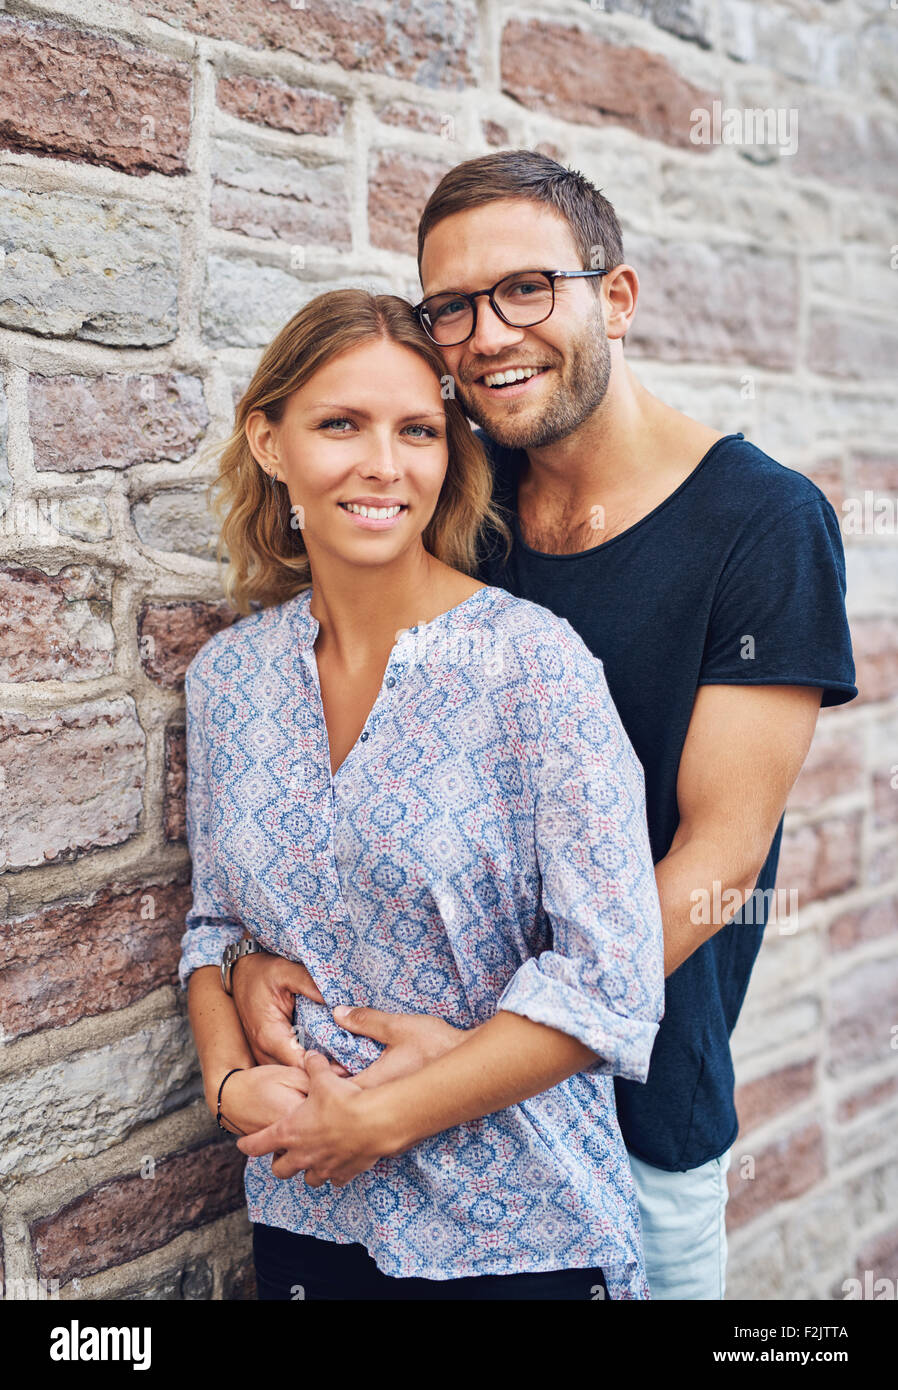 Half Body Shot of a Sweet Man Hugging his Girlfriend From her Behind While Leaning Against Concrete Wall and Smiles - Stock Image